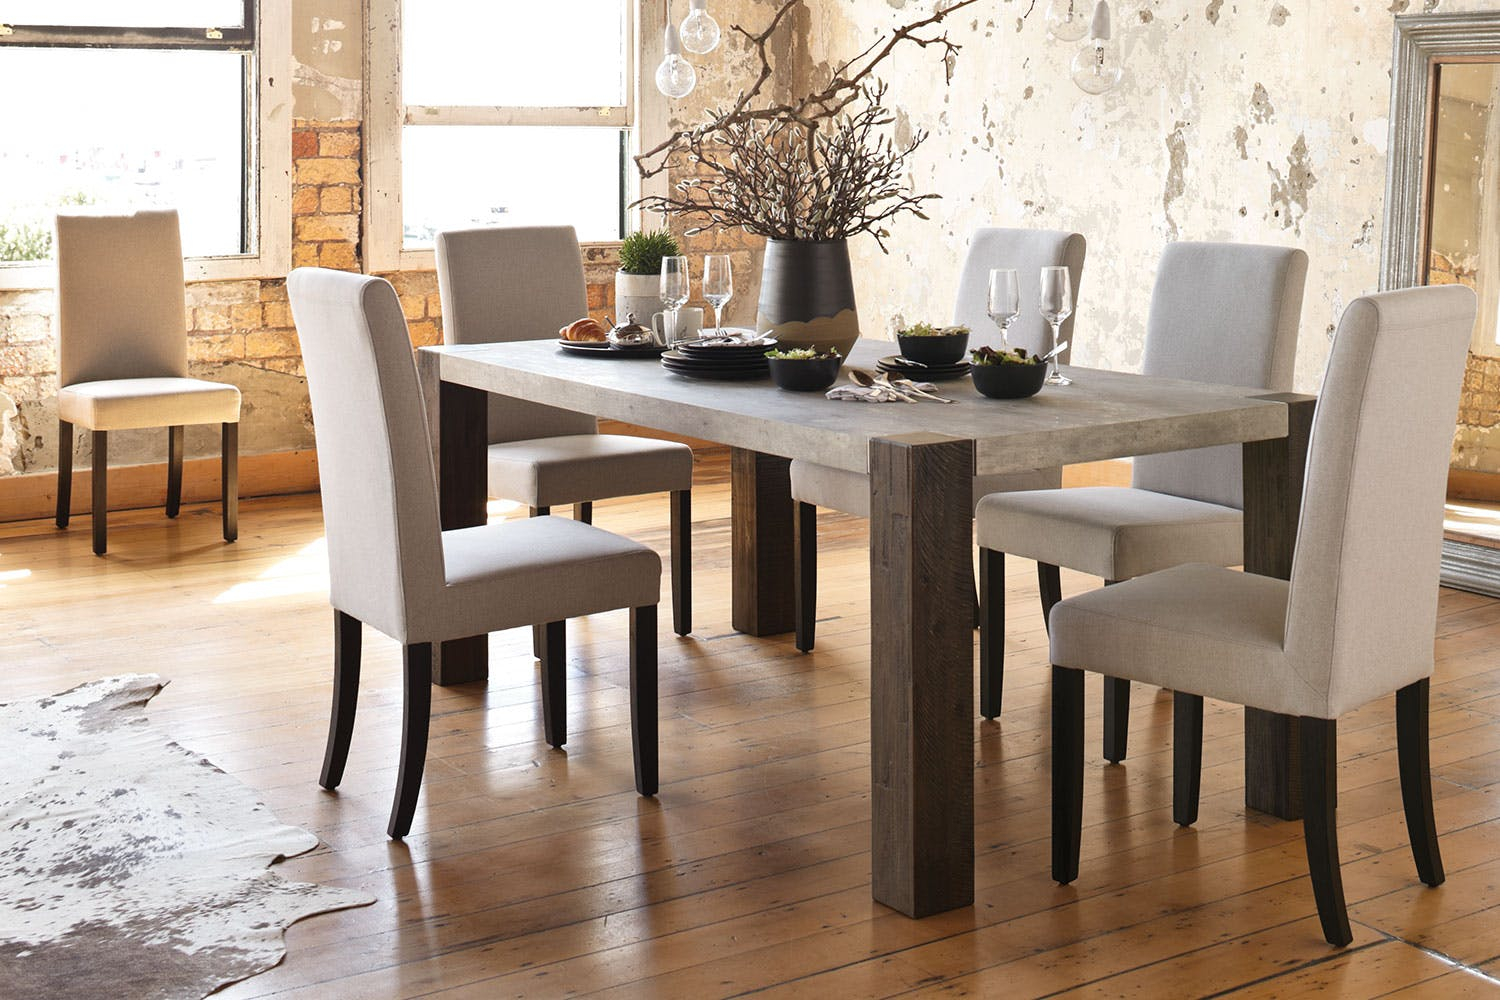 Faro dining table by la z boy harvey norman new zealand for Dining room tables nz